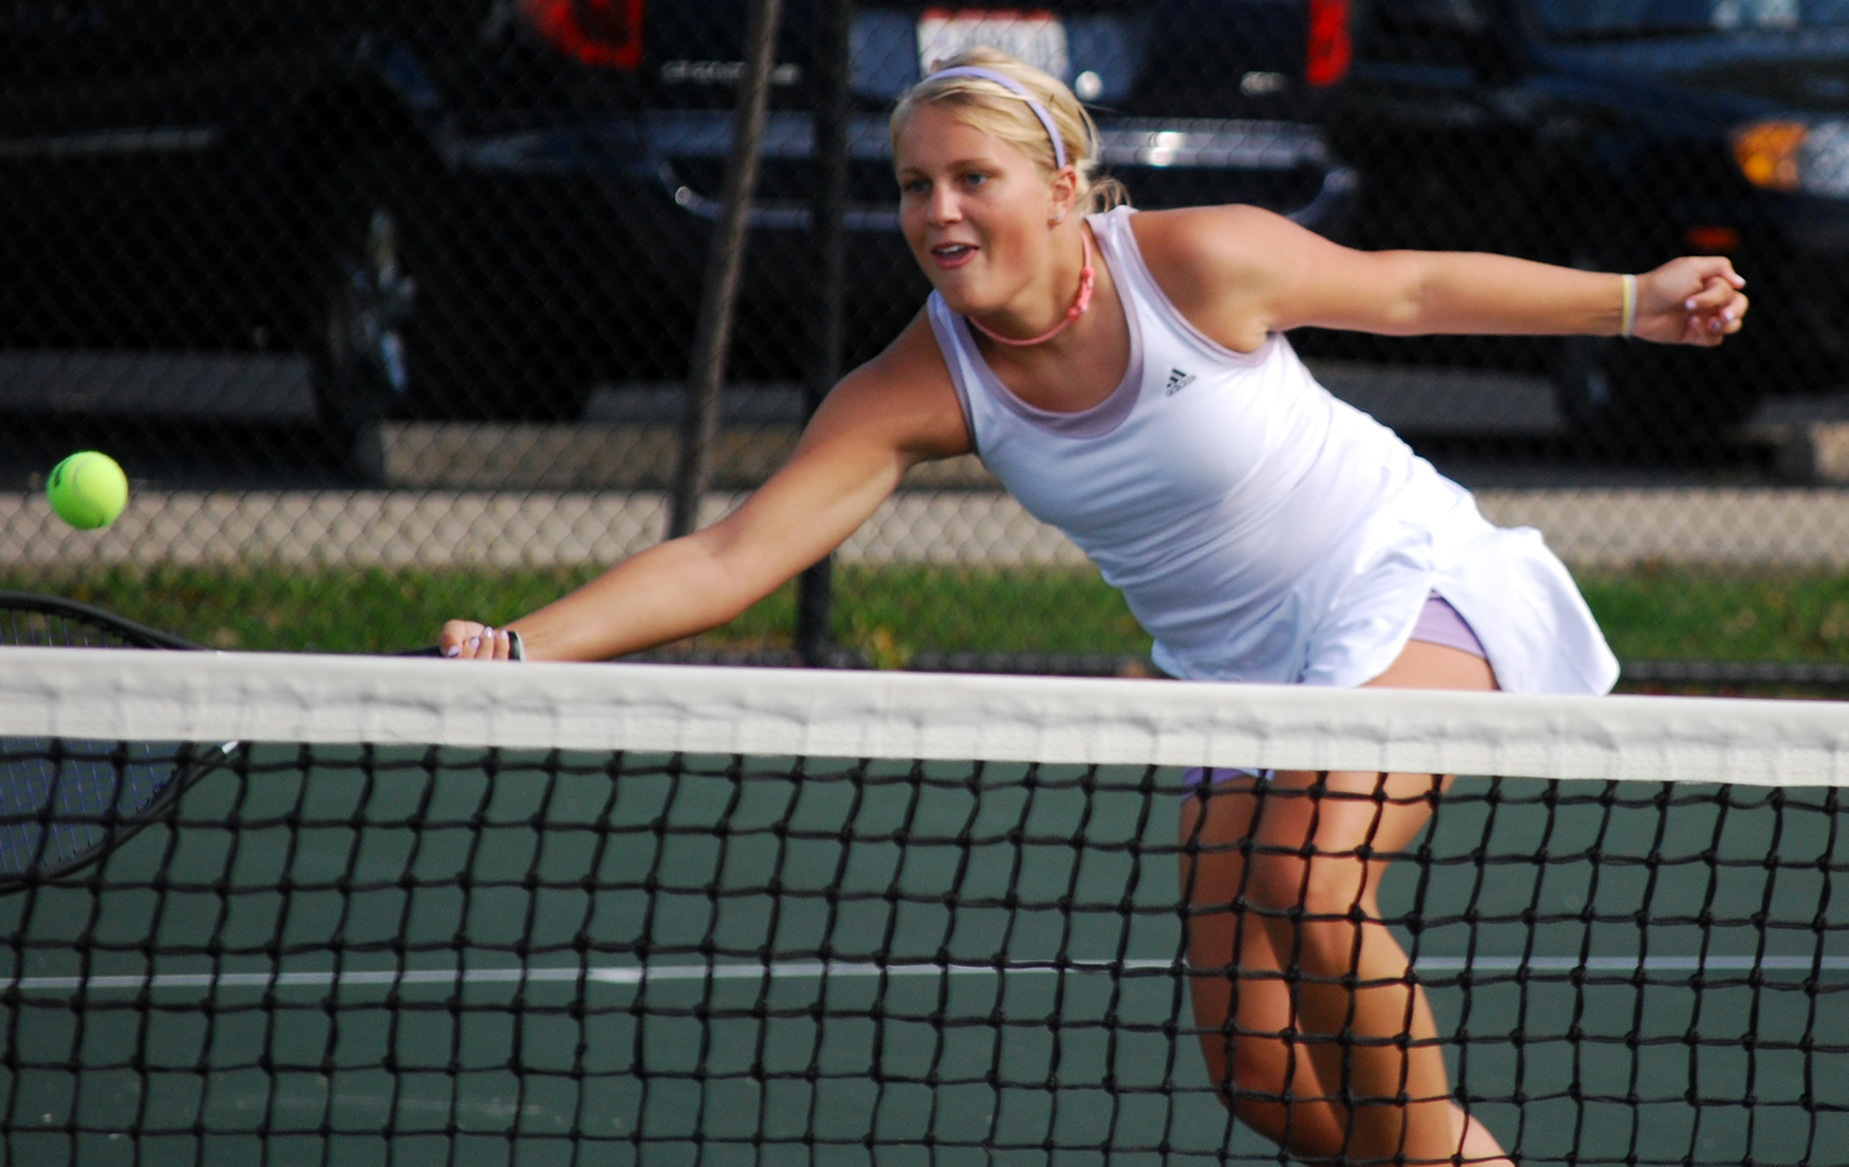 DC Drops HCAC Tri-Match with Bluffton and Rose-Hulman